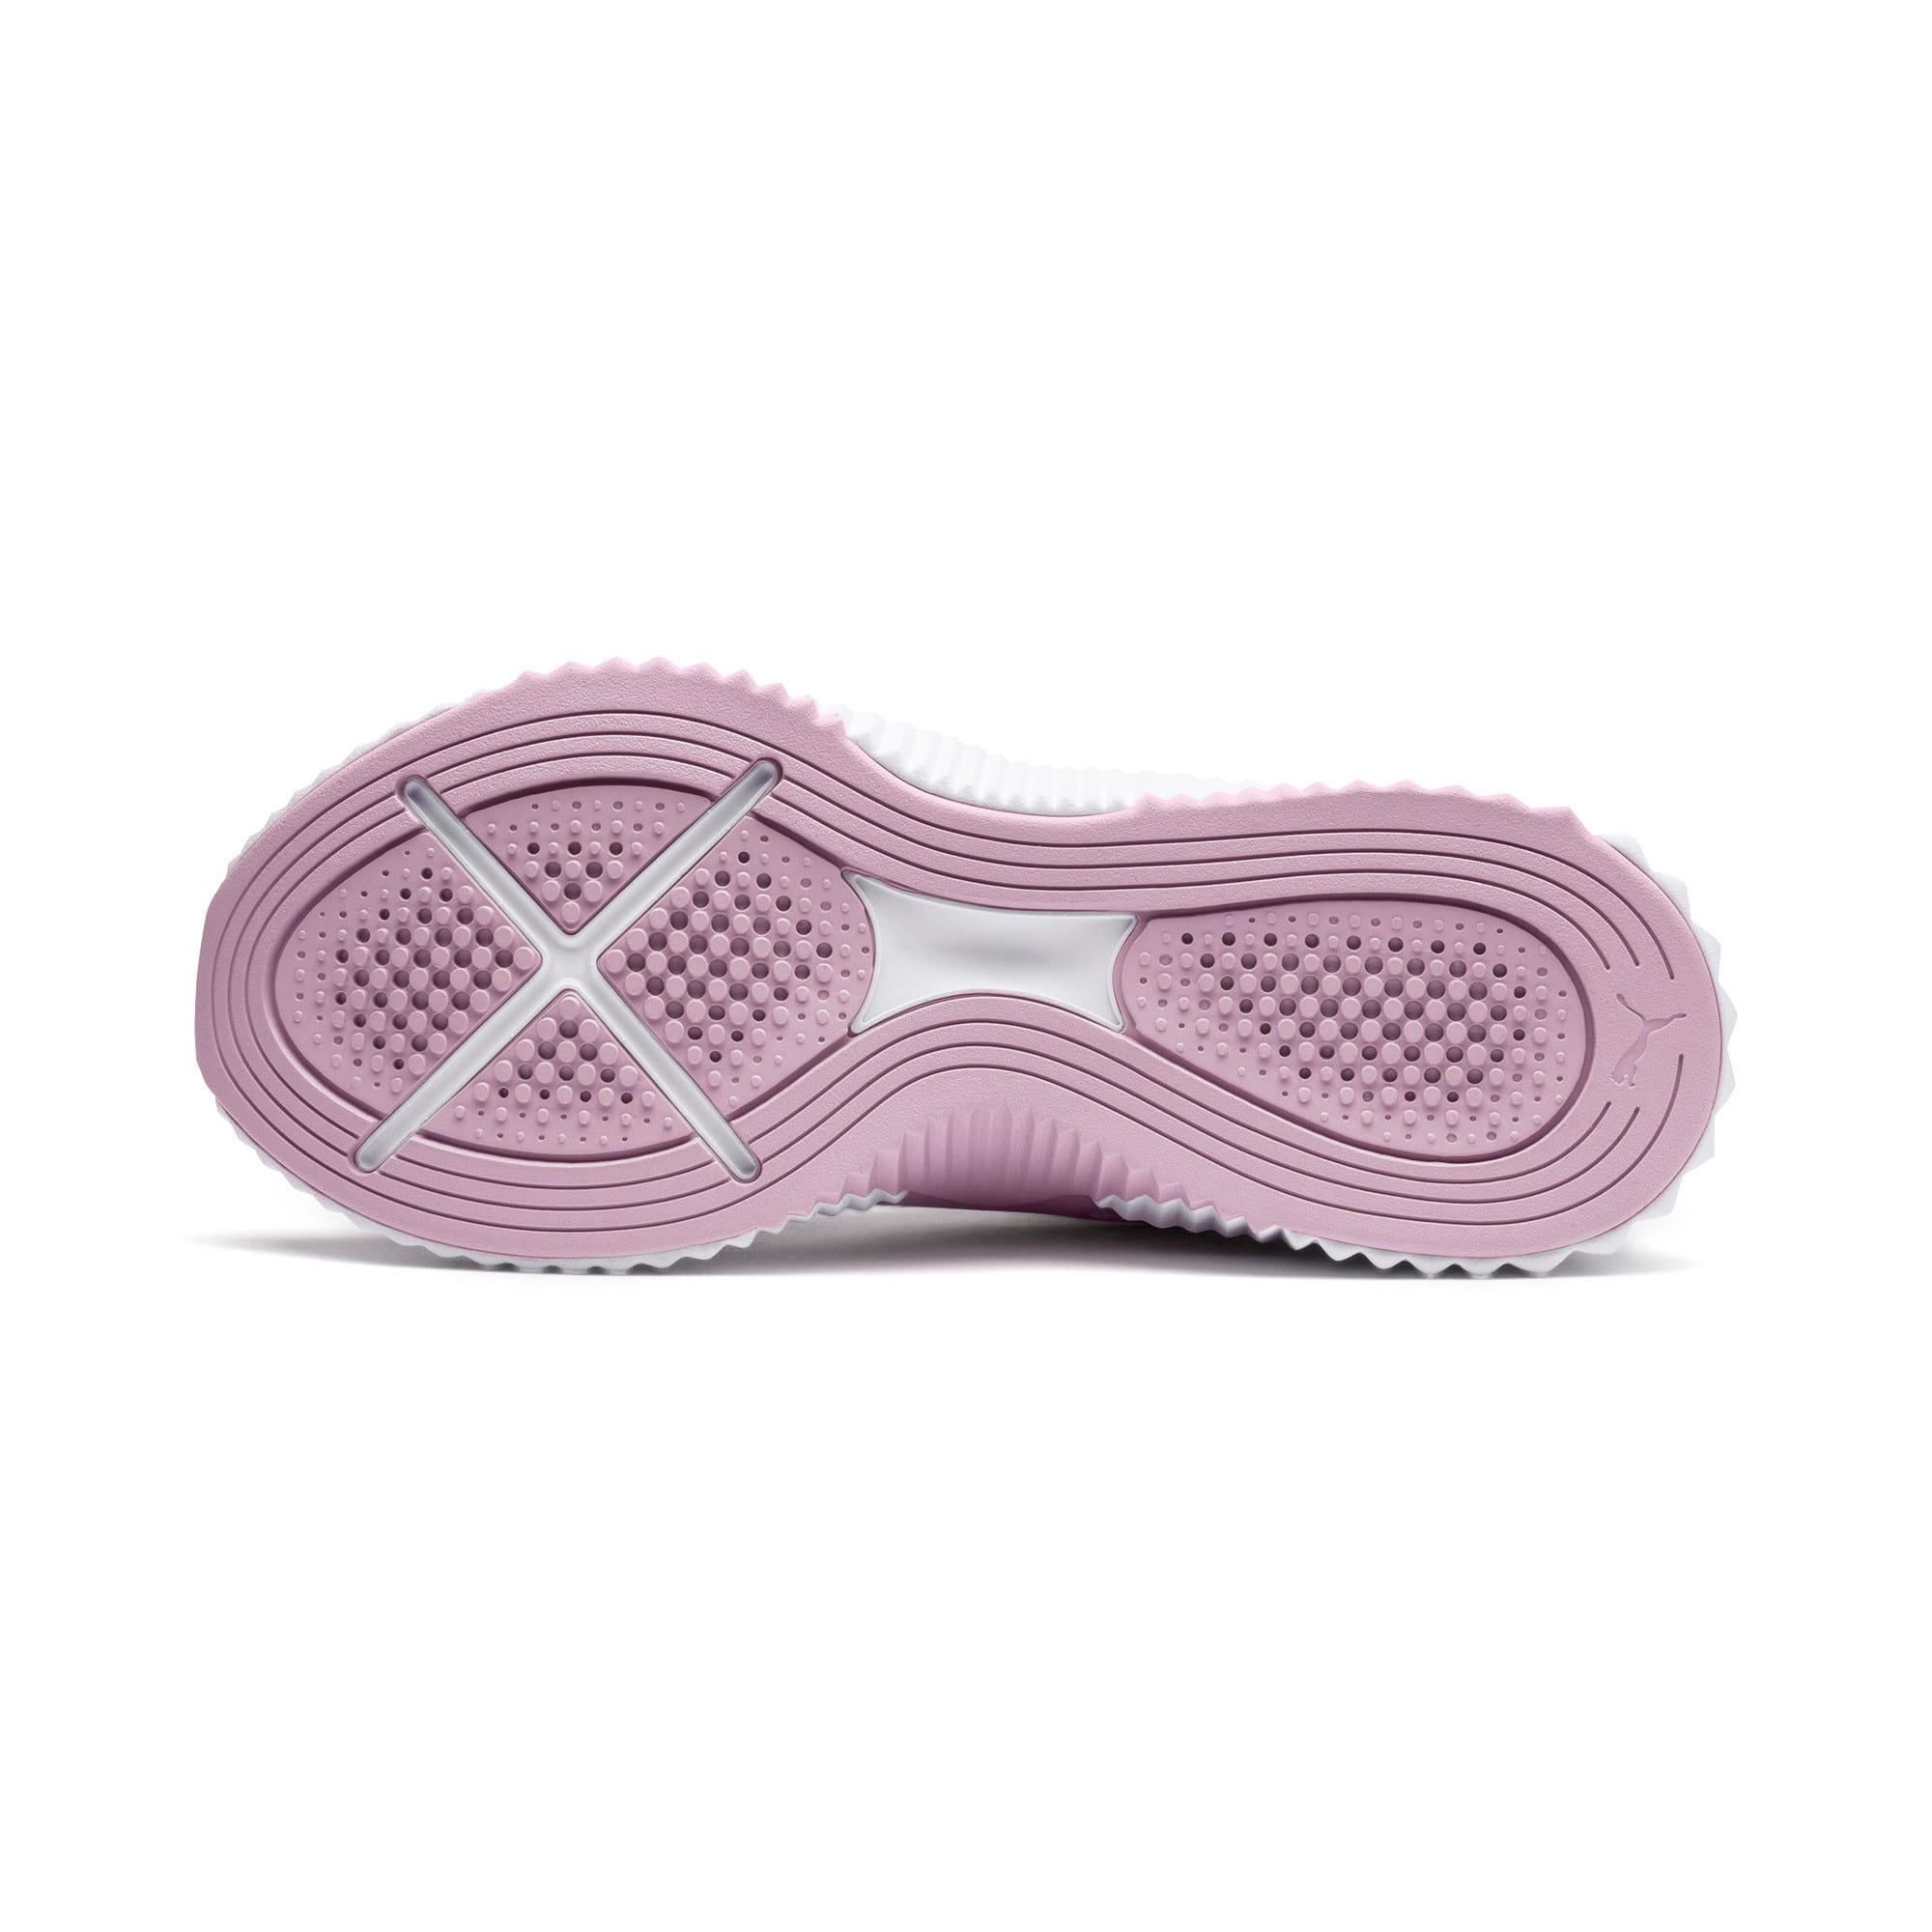 Thumbnail 3 of Defy Women's Training Shoes, Winsome Orchid-Puma White, medium